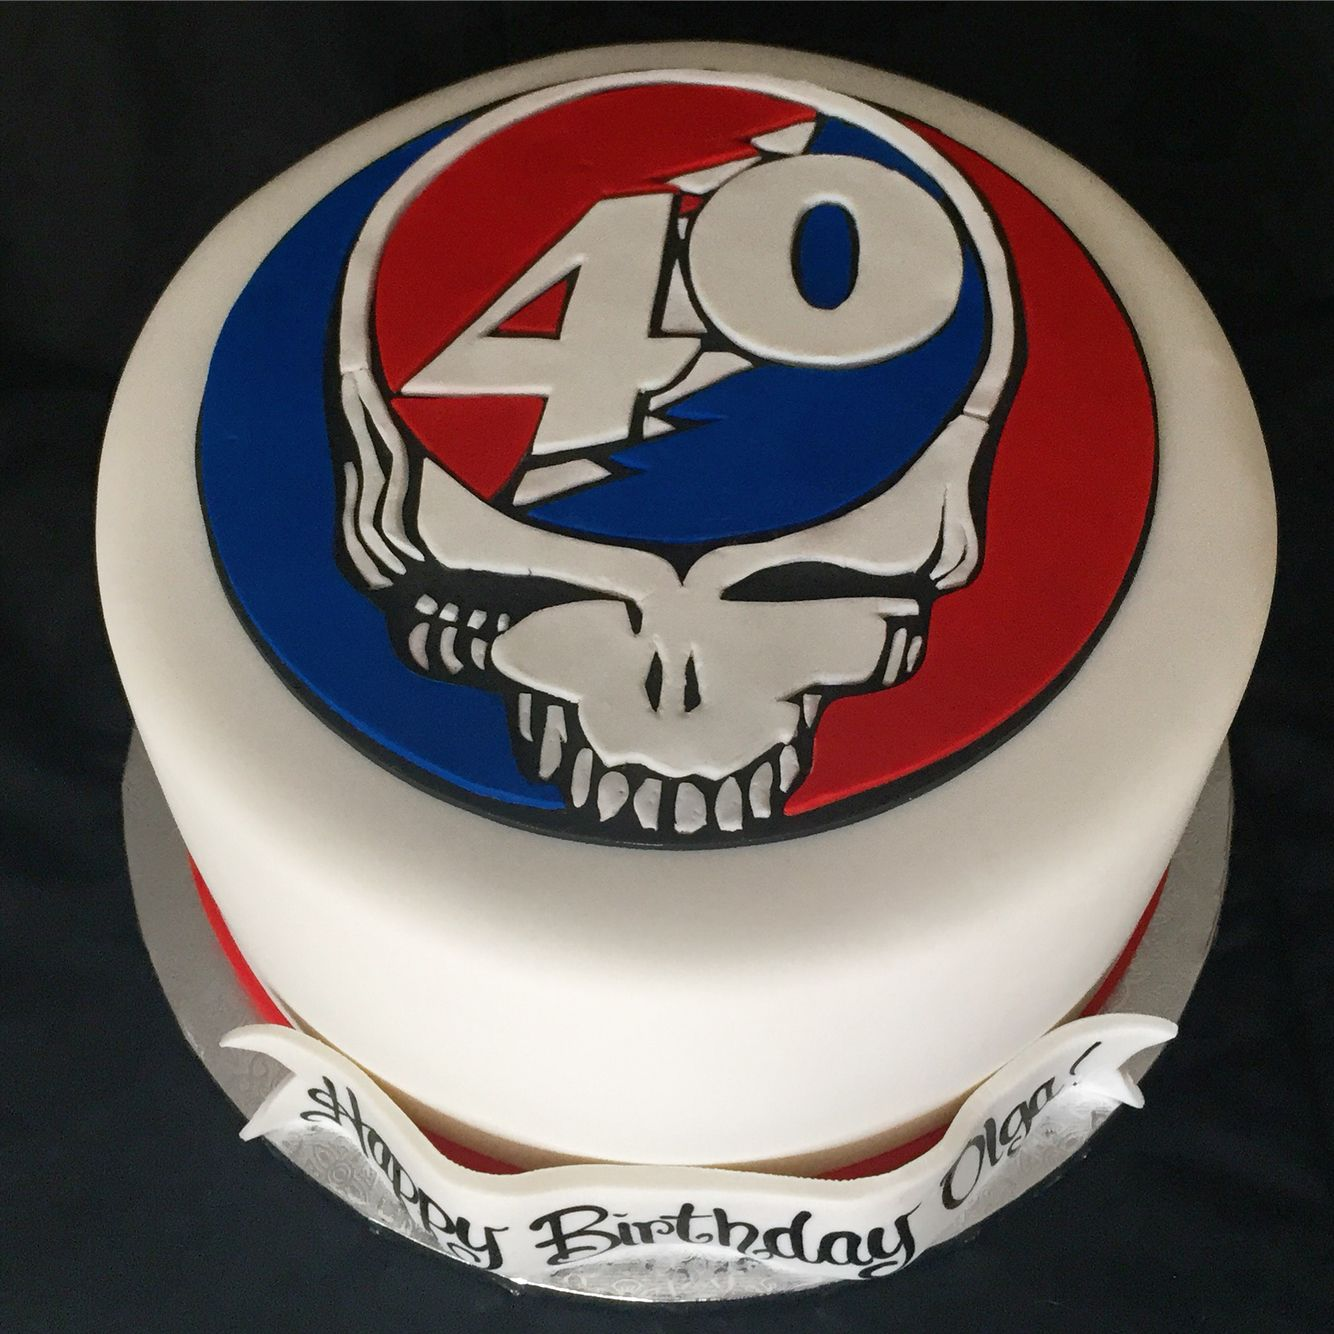 Grateful Dead Steal Your Face Cake ️ By Cakebaby 40th